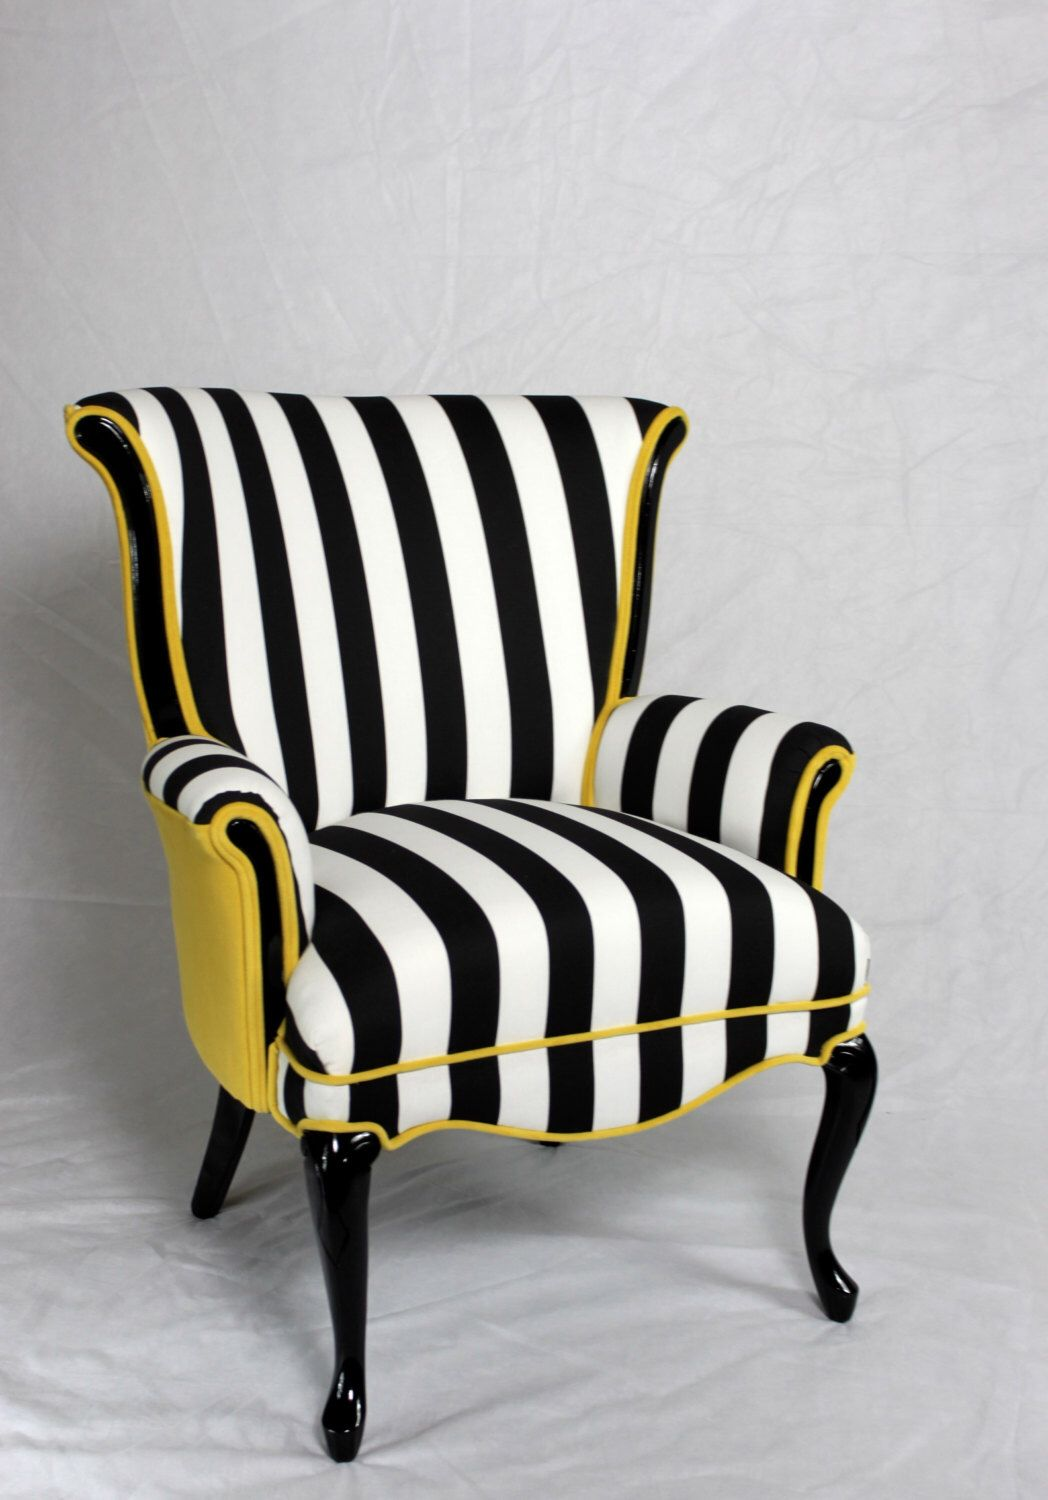 Black And White Stripe Chair With Yellow Velvet Vintage Wing Back Mid Century Modern Element 20 Designs I D Either Replace The